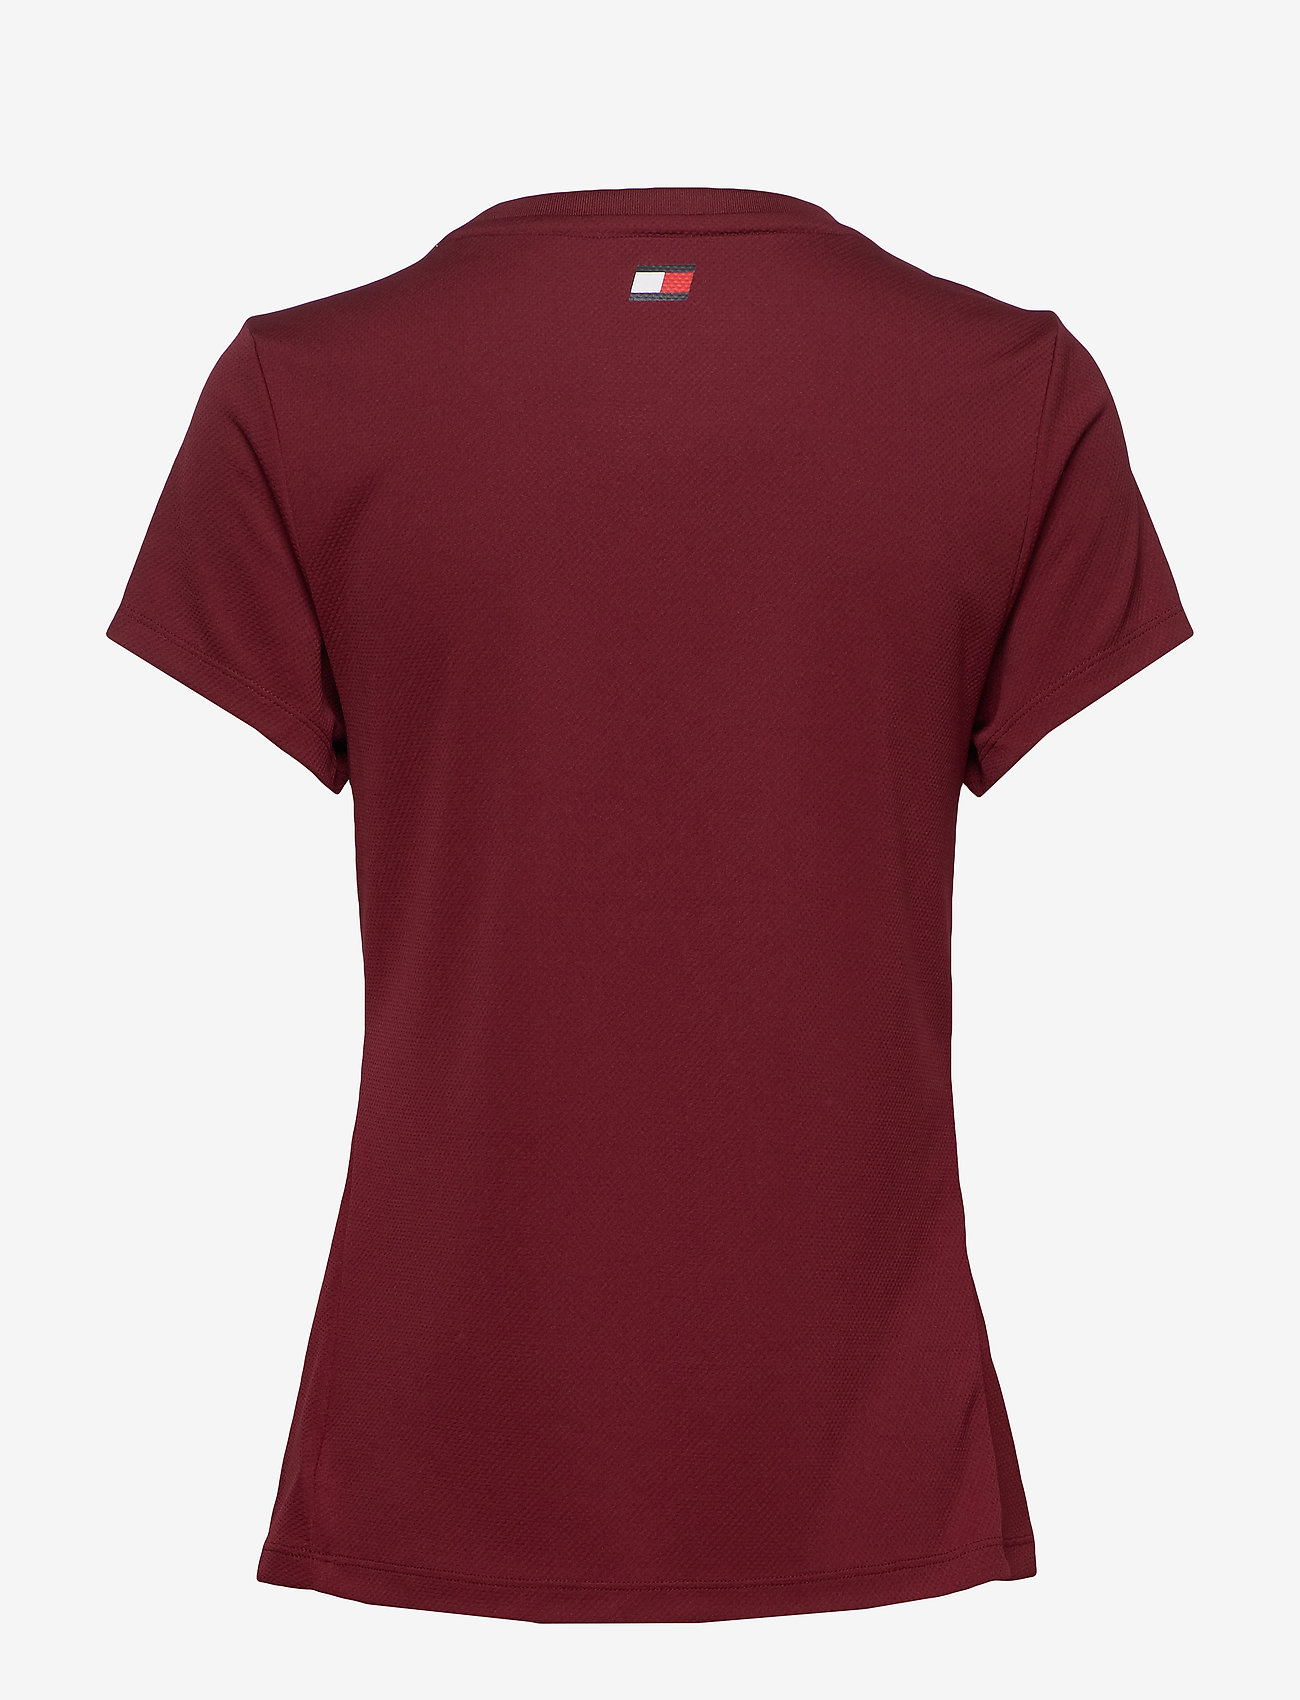 Tommy Sport - PERFORMANCE CHEST LOGO TOP - logo t-shirts - deep rouge - 1